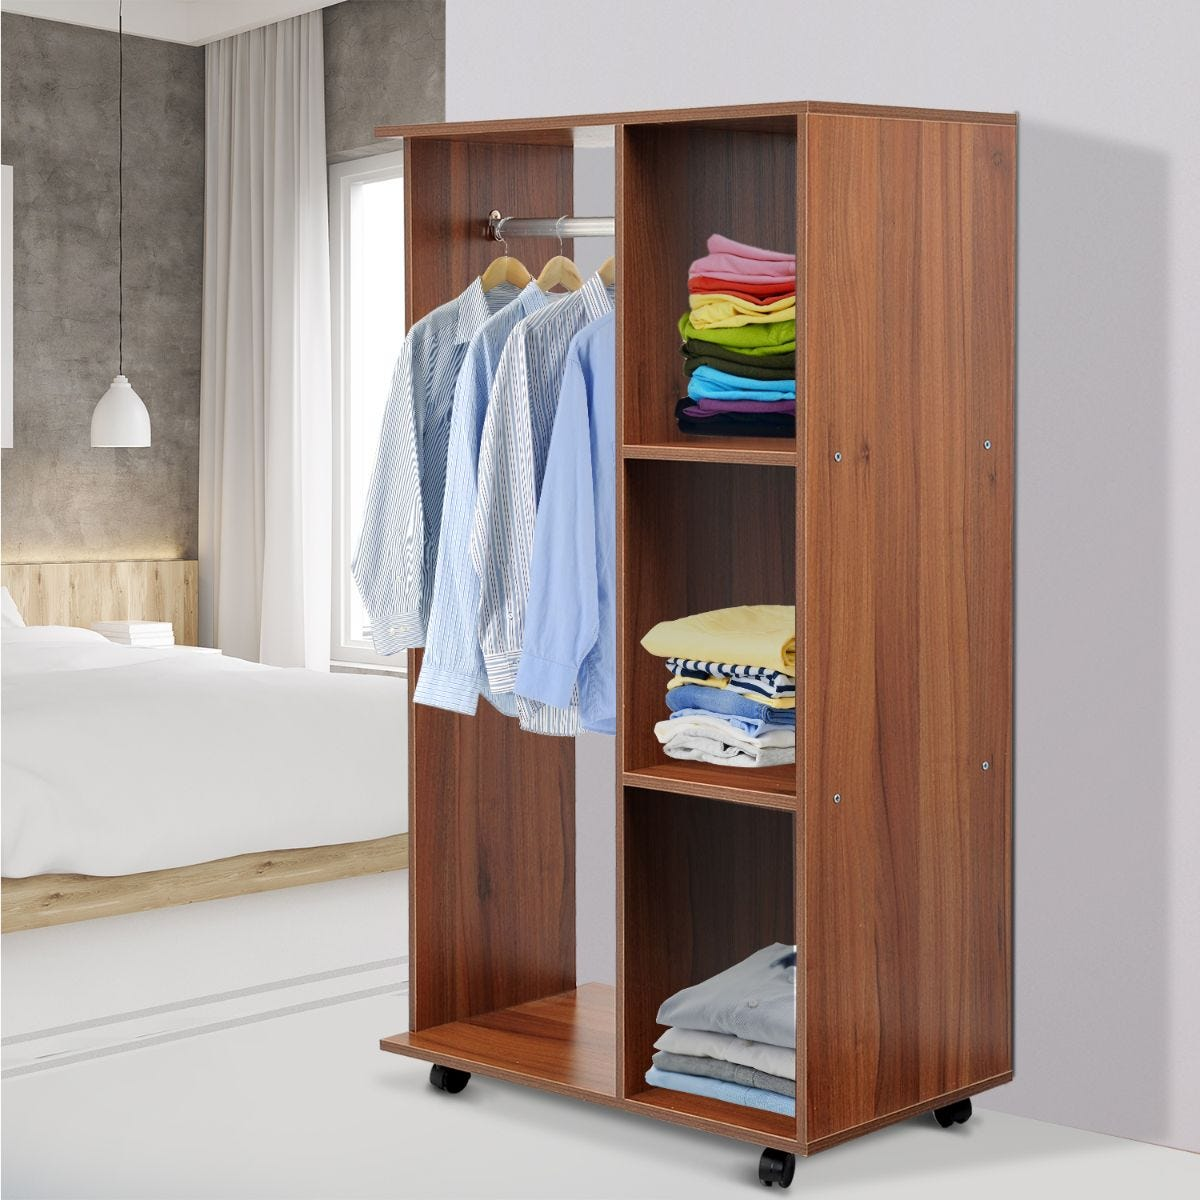 Rolling Open Wardrobe With Hanging Rail And Storage Shelves Walnut